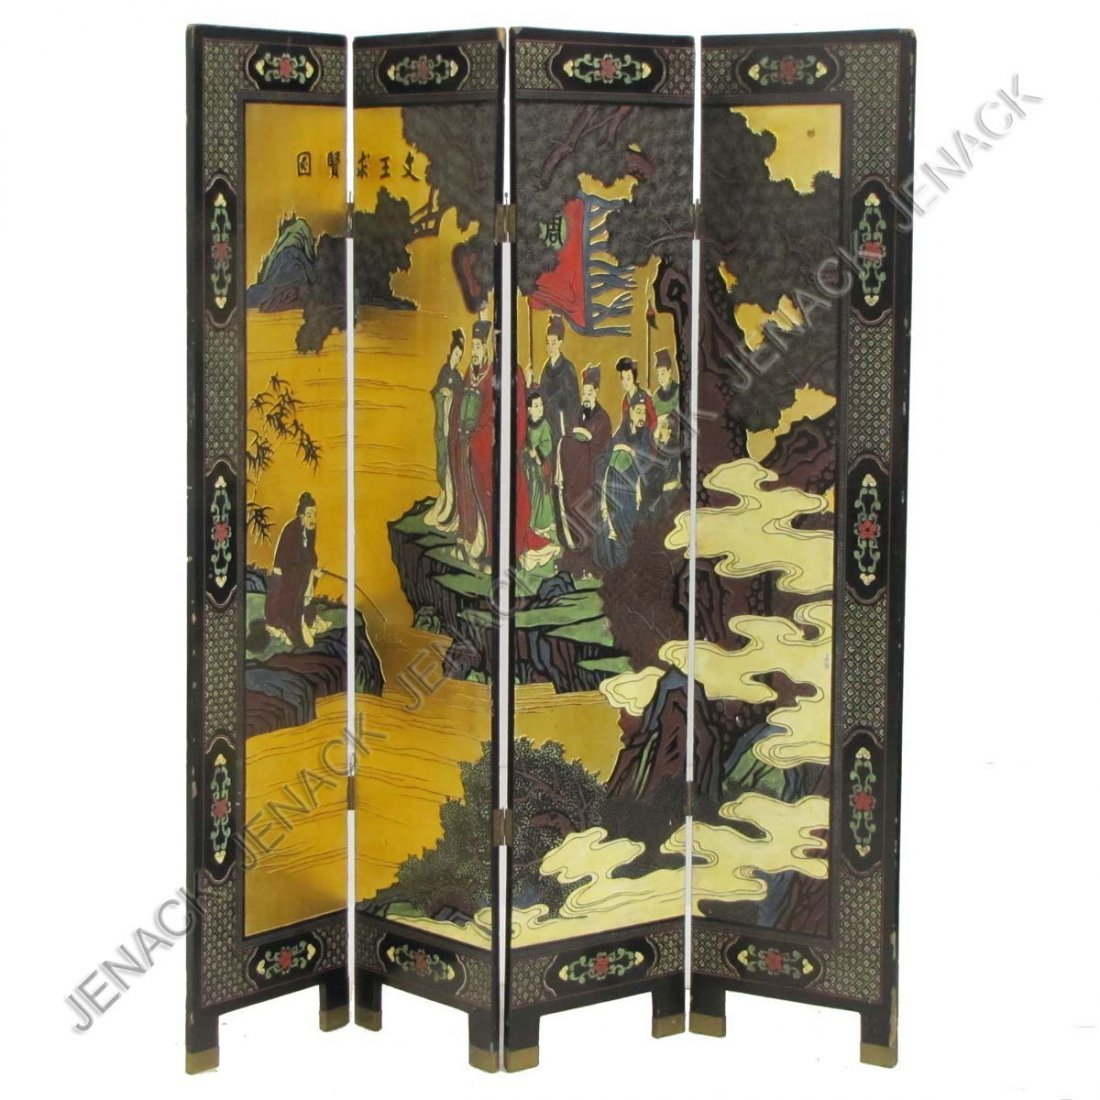 23: VINTAGE CHINESE 4-PANEL CORAMANDLE SCREEN